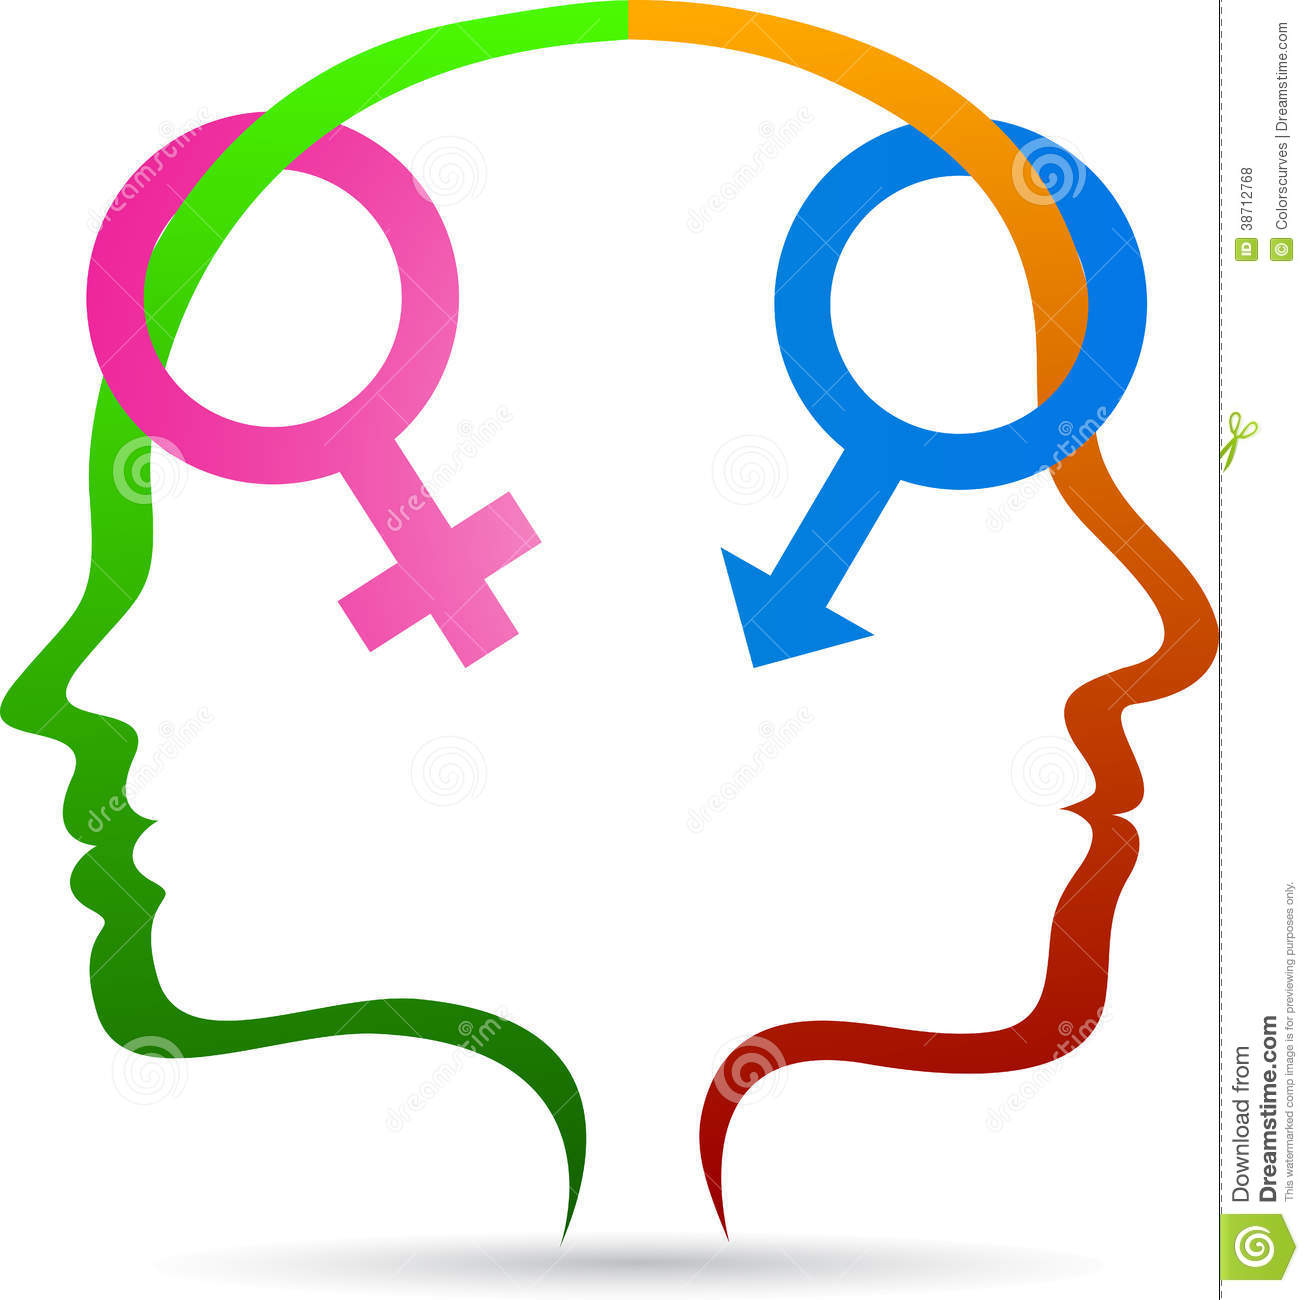 Male Female Sex Symbol Stock Vector Illustration Of Female 38712768